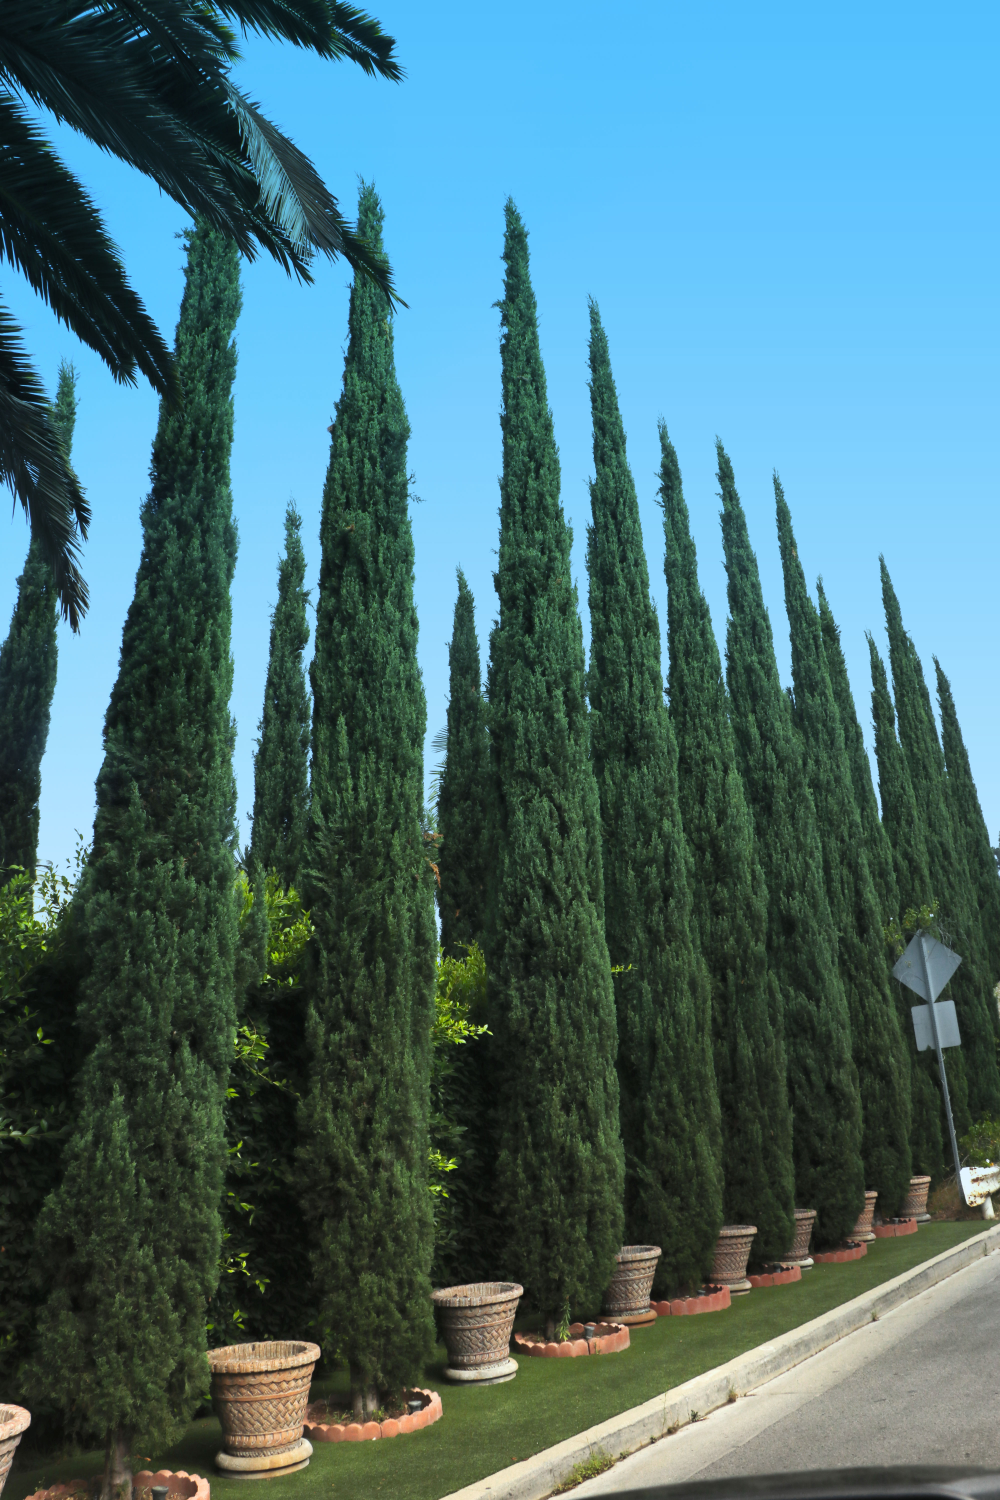 Italian Cypress Trees For Sale At Paradise Nursery Italian Cypress Trees Italian Cypress Cypress Trees